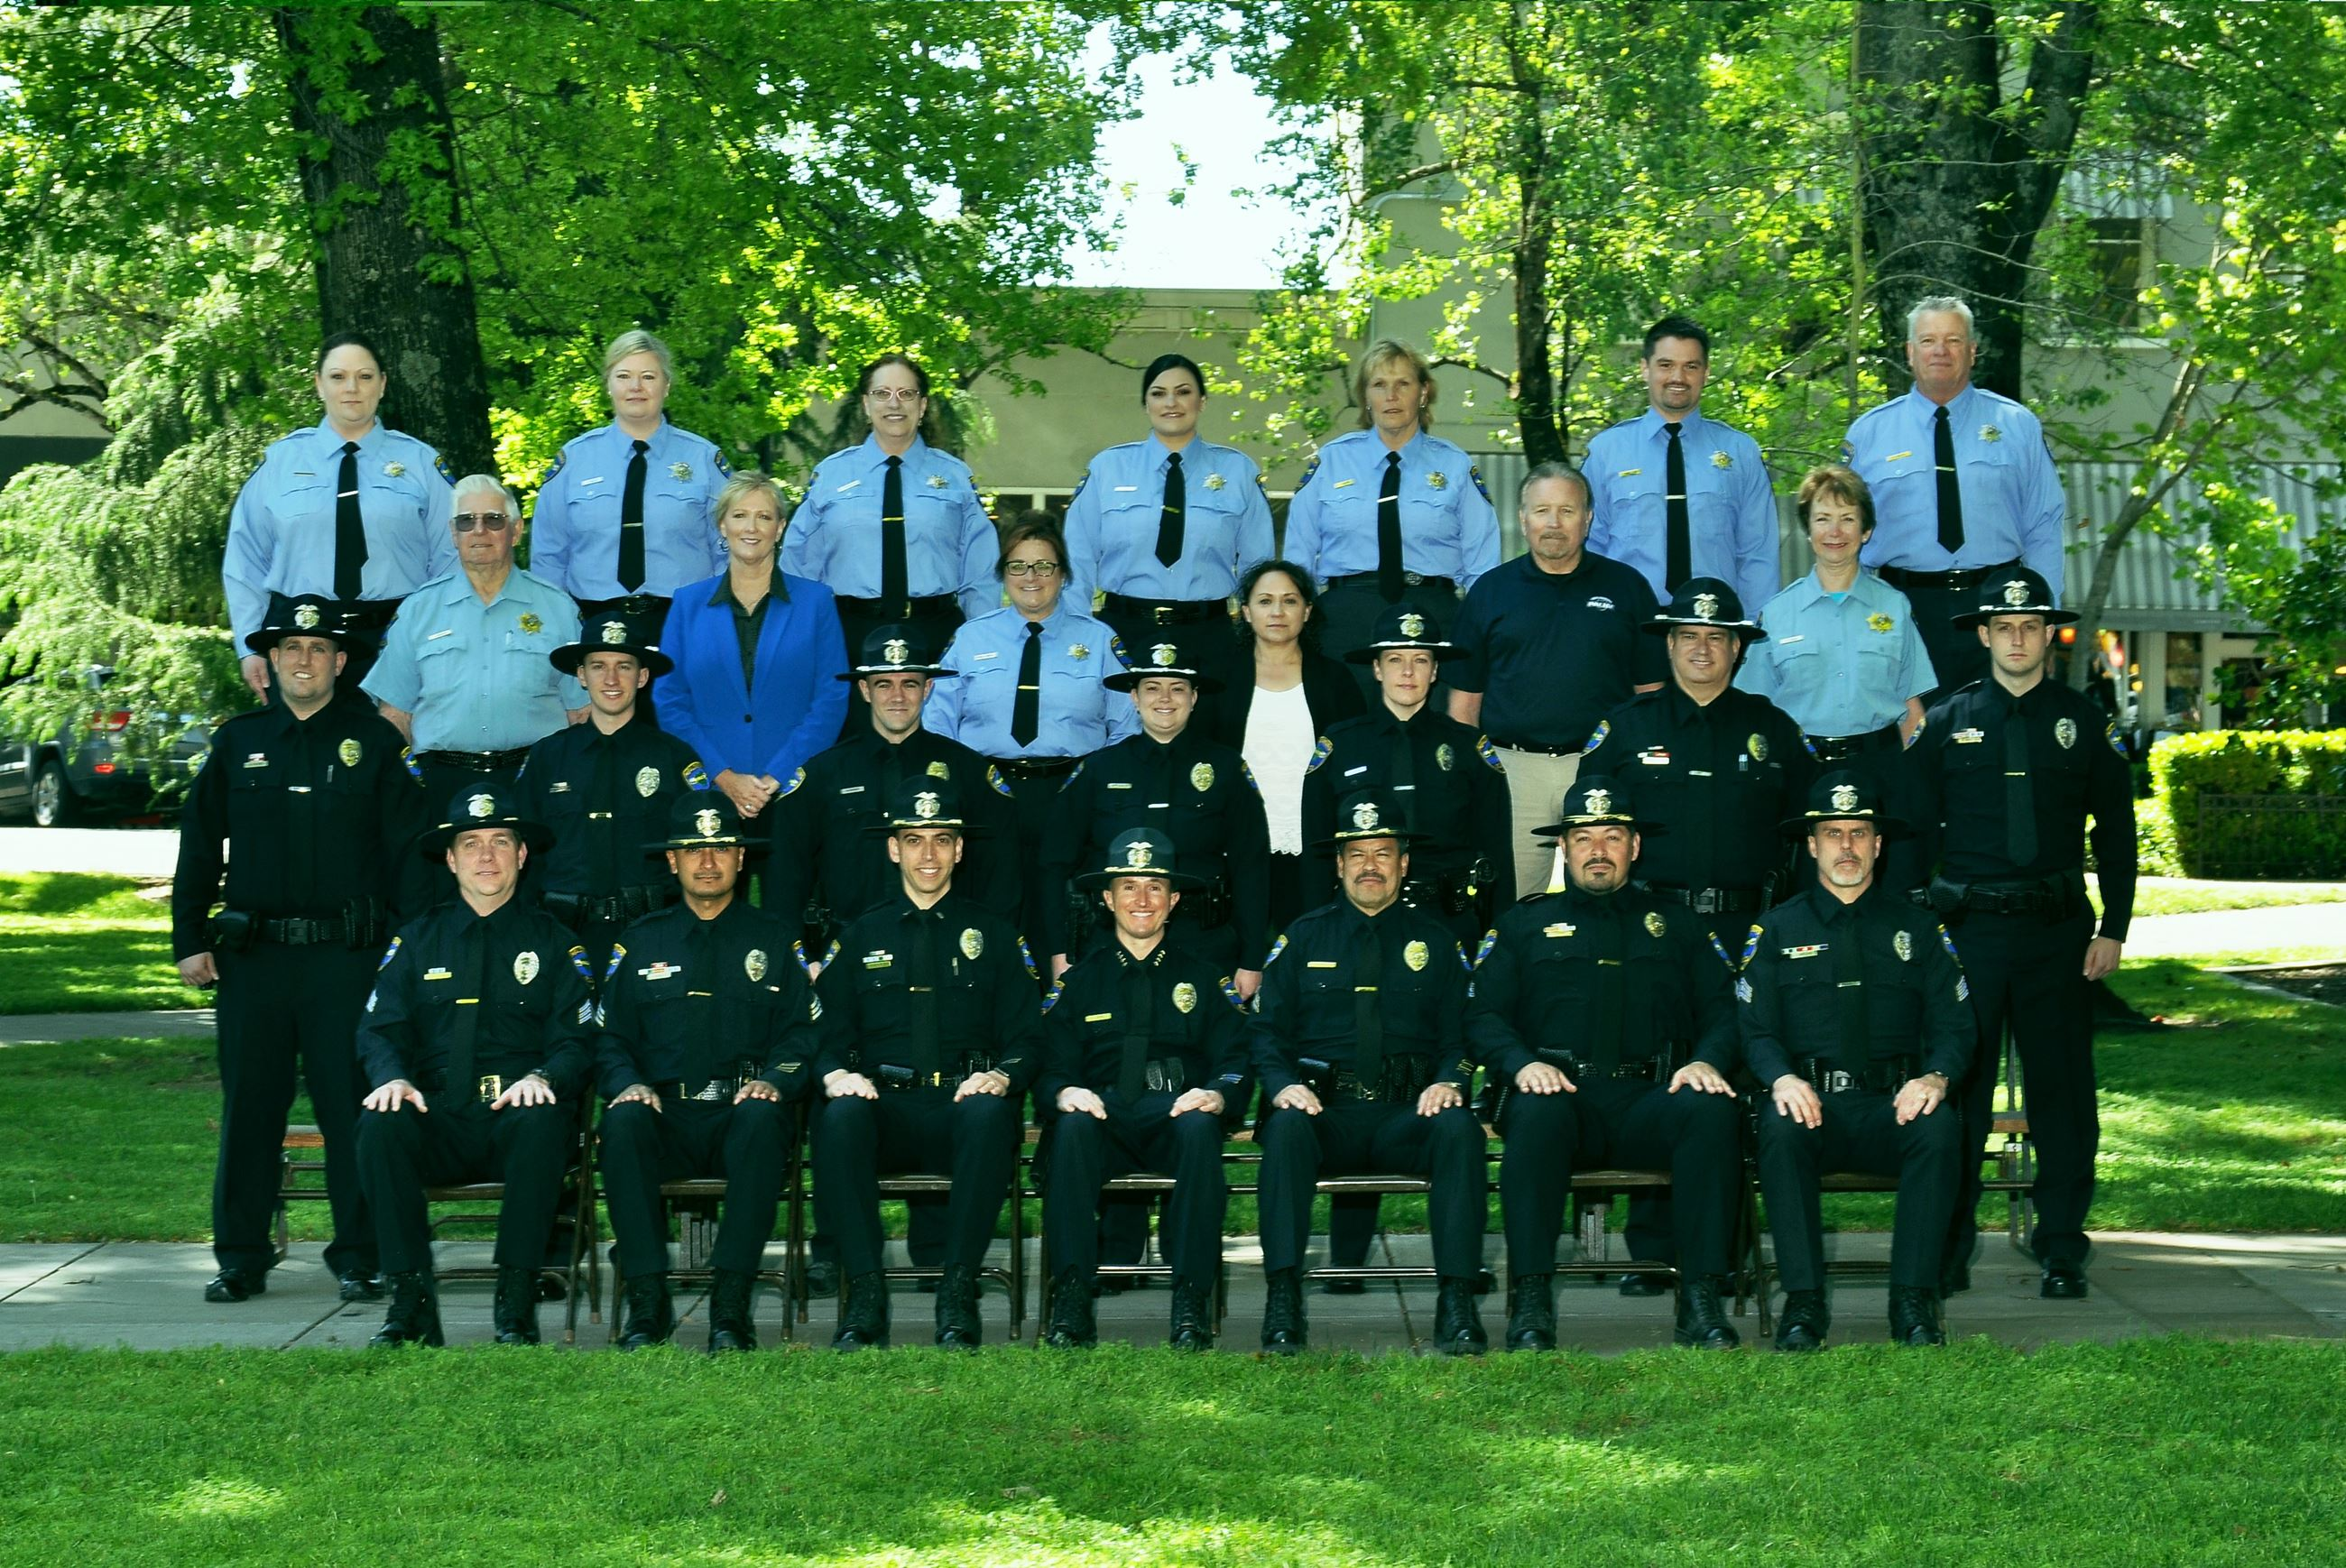 2016 Healdsburg Police Department Members